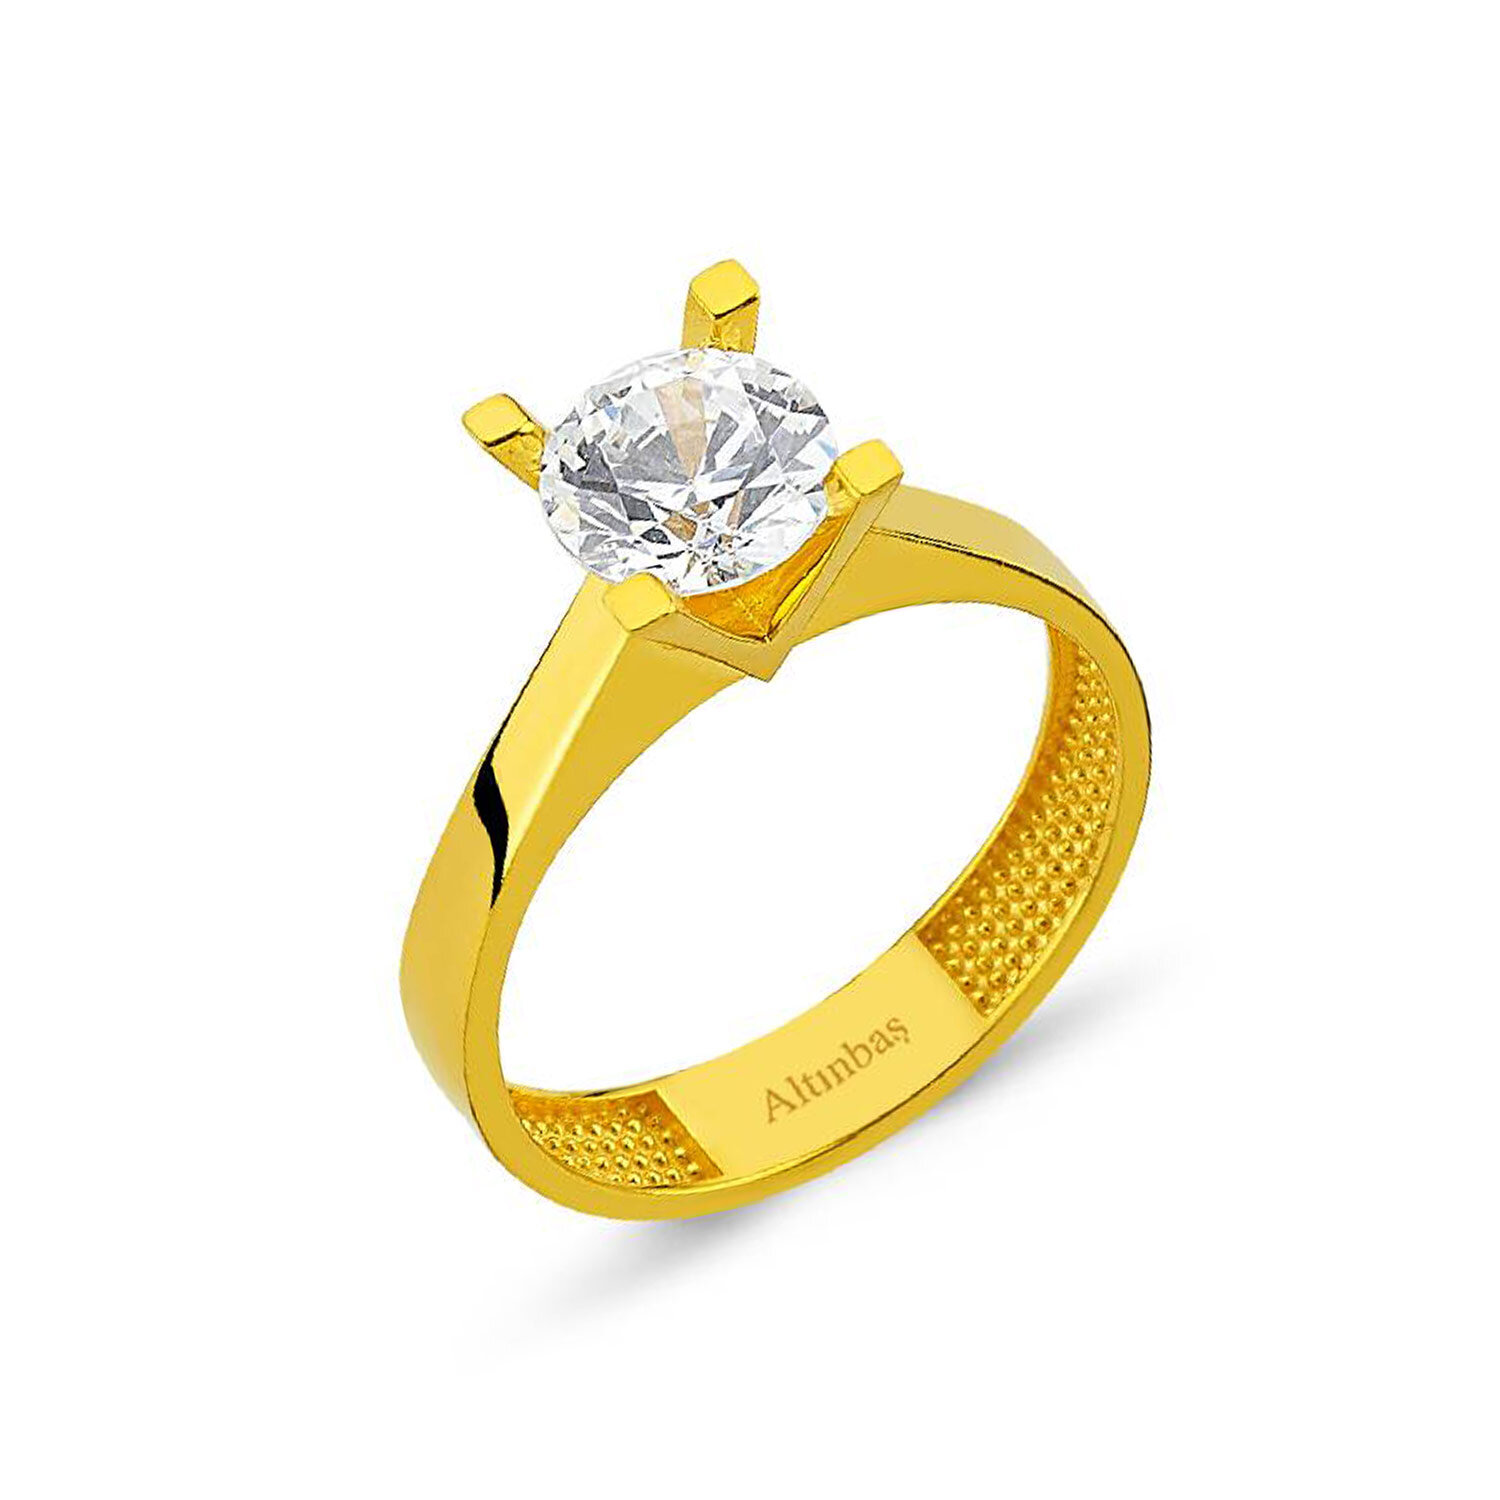 22 Carat Solitaire Gold Ring